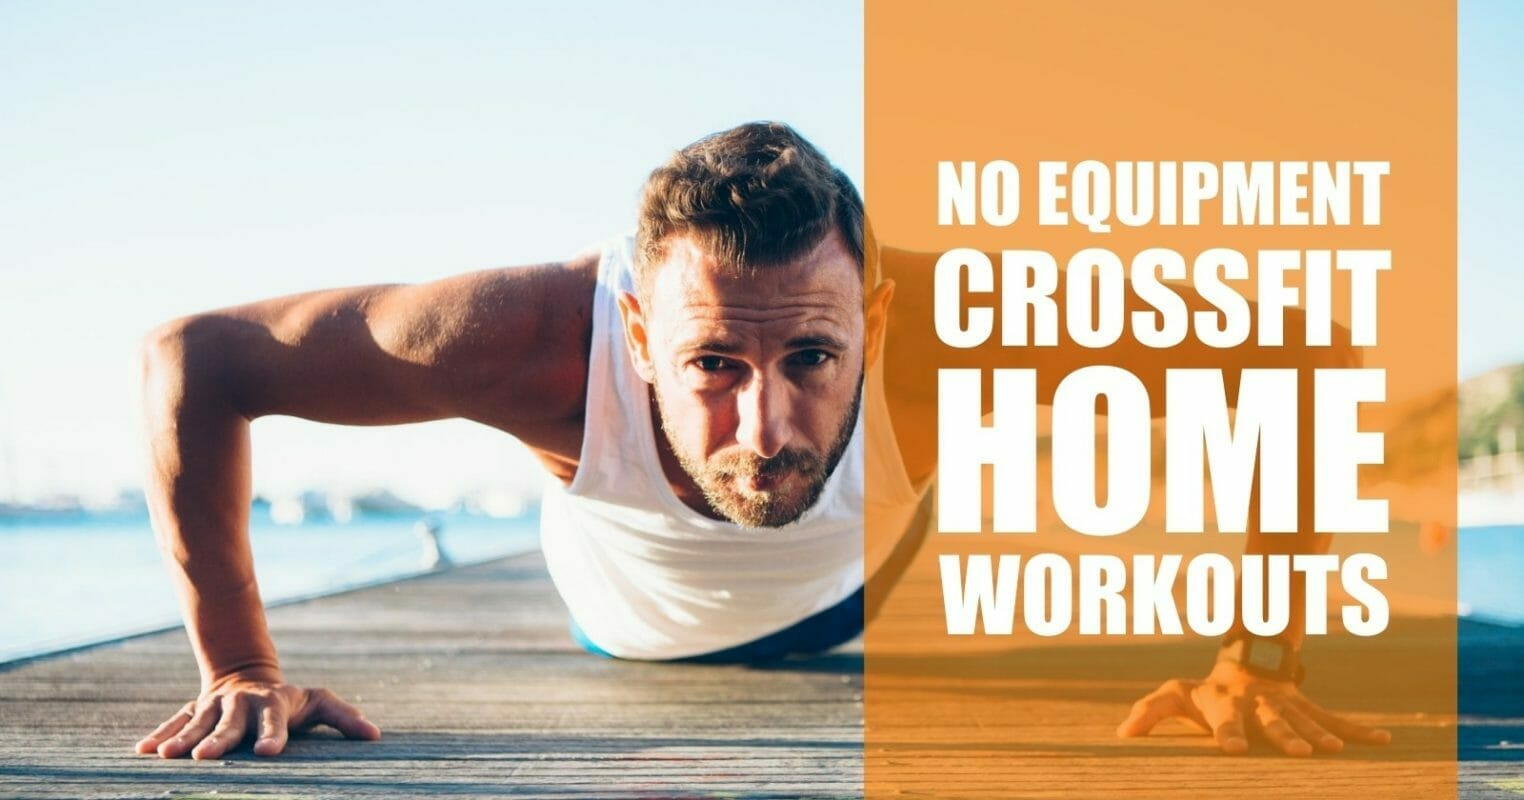 no equipment crossfit home workouts